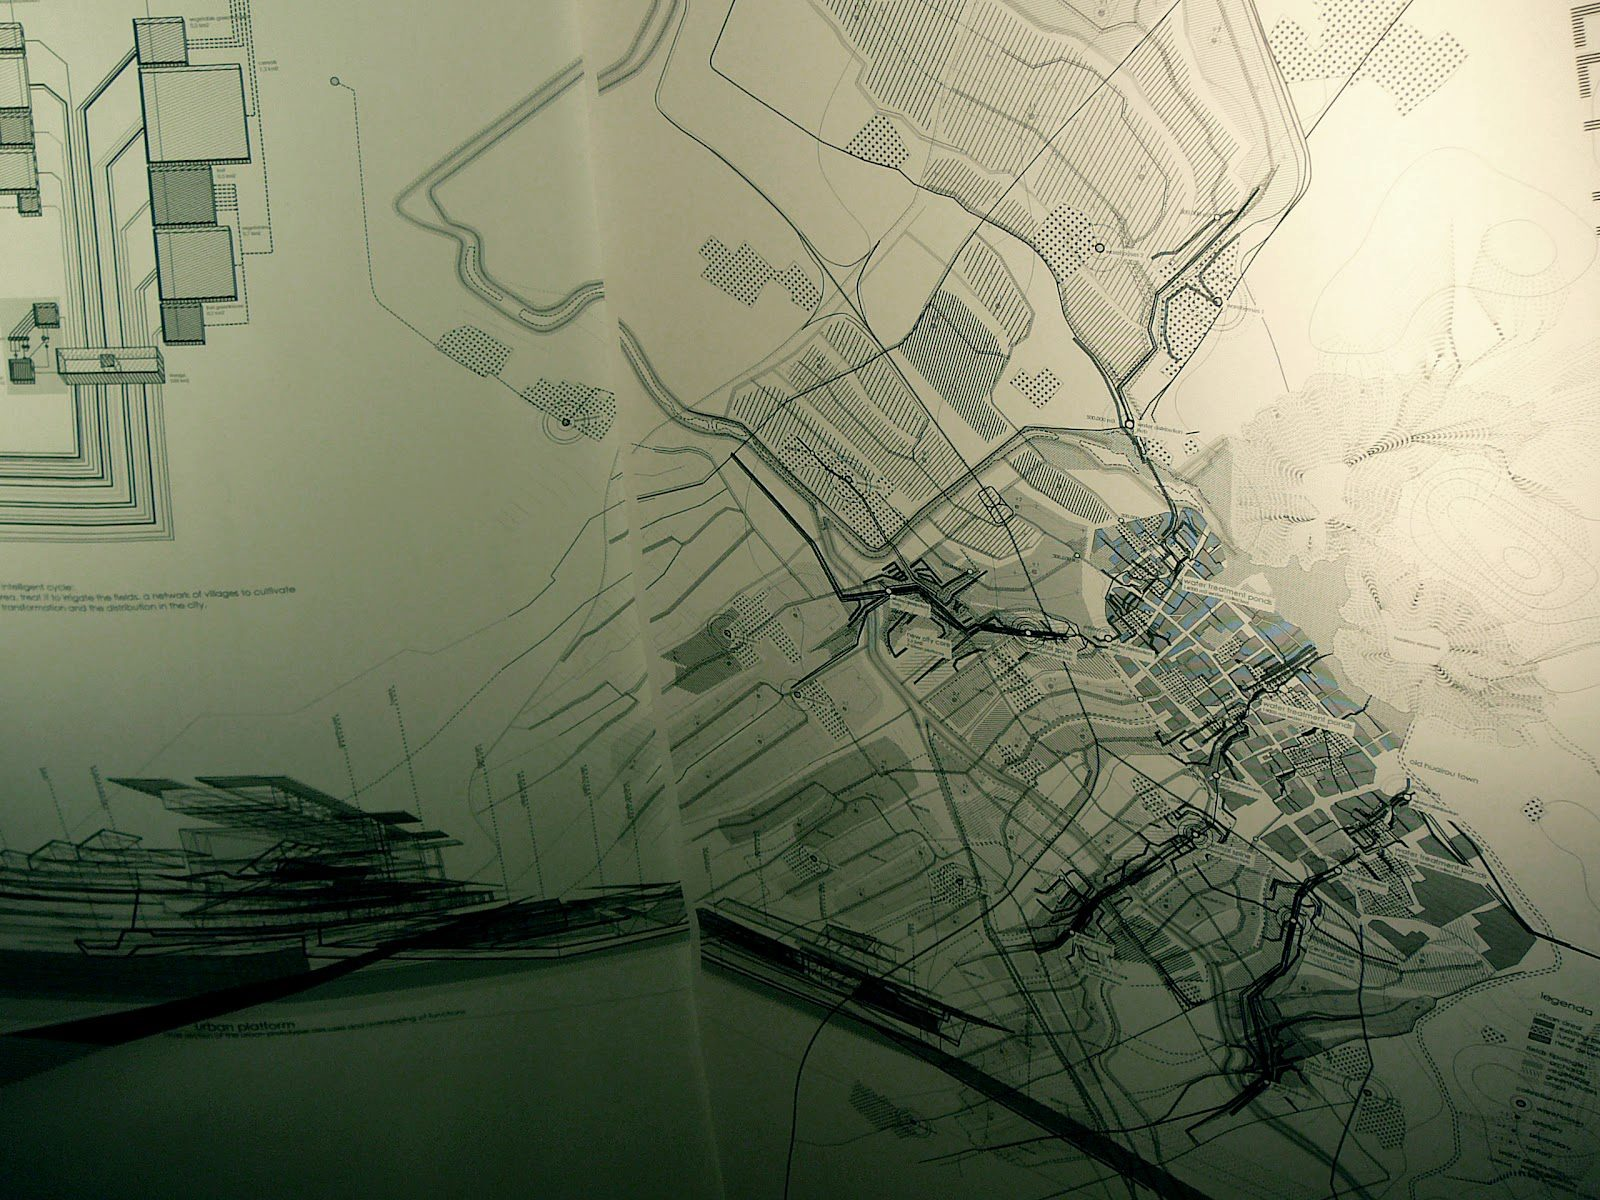 AALU LANDSCAPE URBANISM AA LANDSACPE URBANISM PROJECTS REVIEW 2012